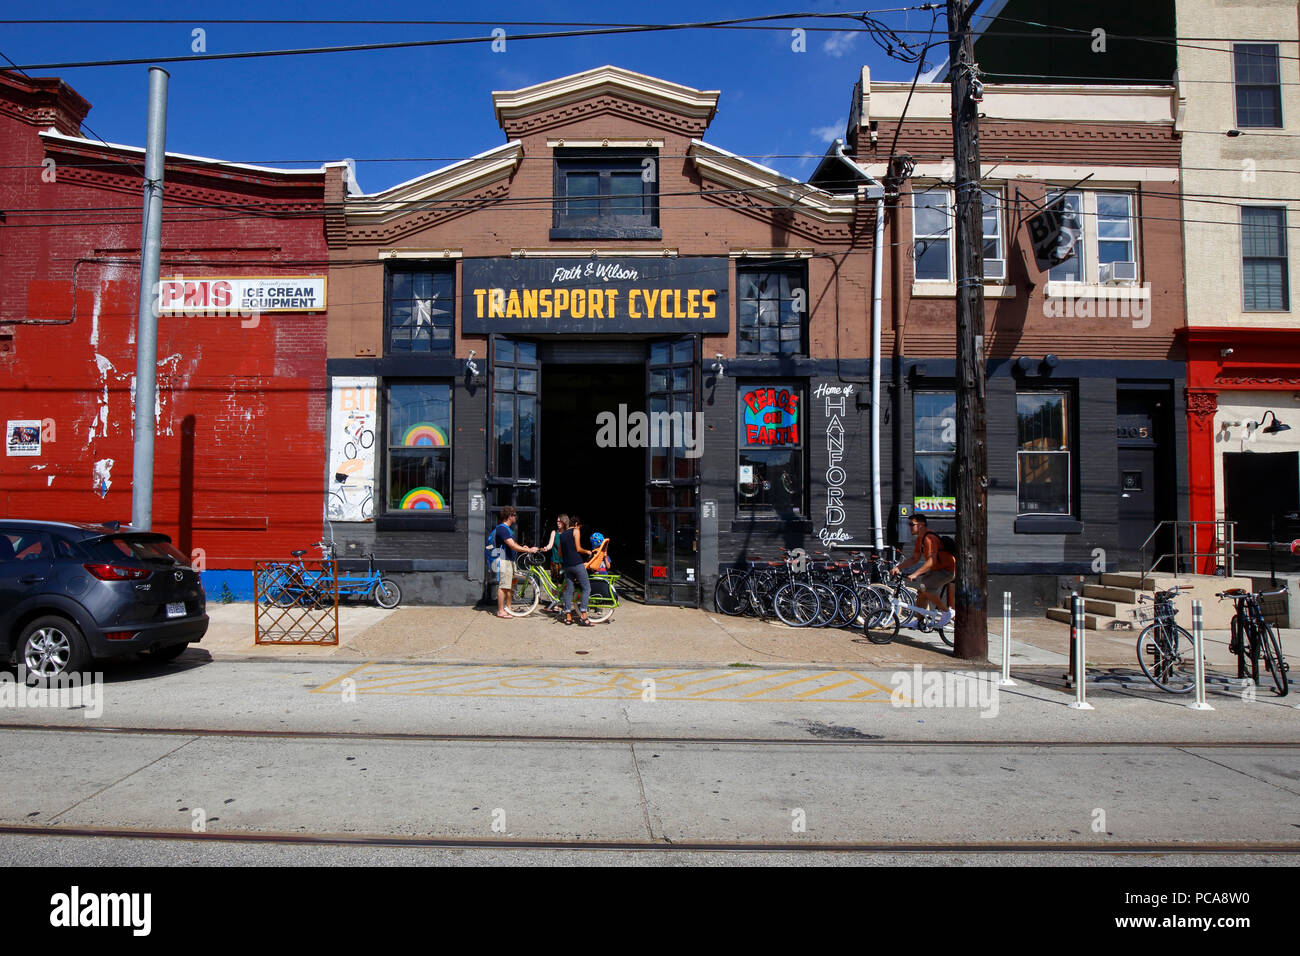 Firth & Wilson Transport Cycles, 1105 Frankford Ave, Philadelphia, PA - Stock Image